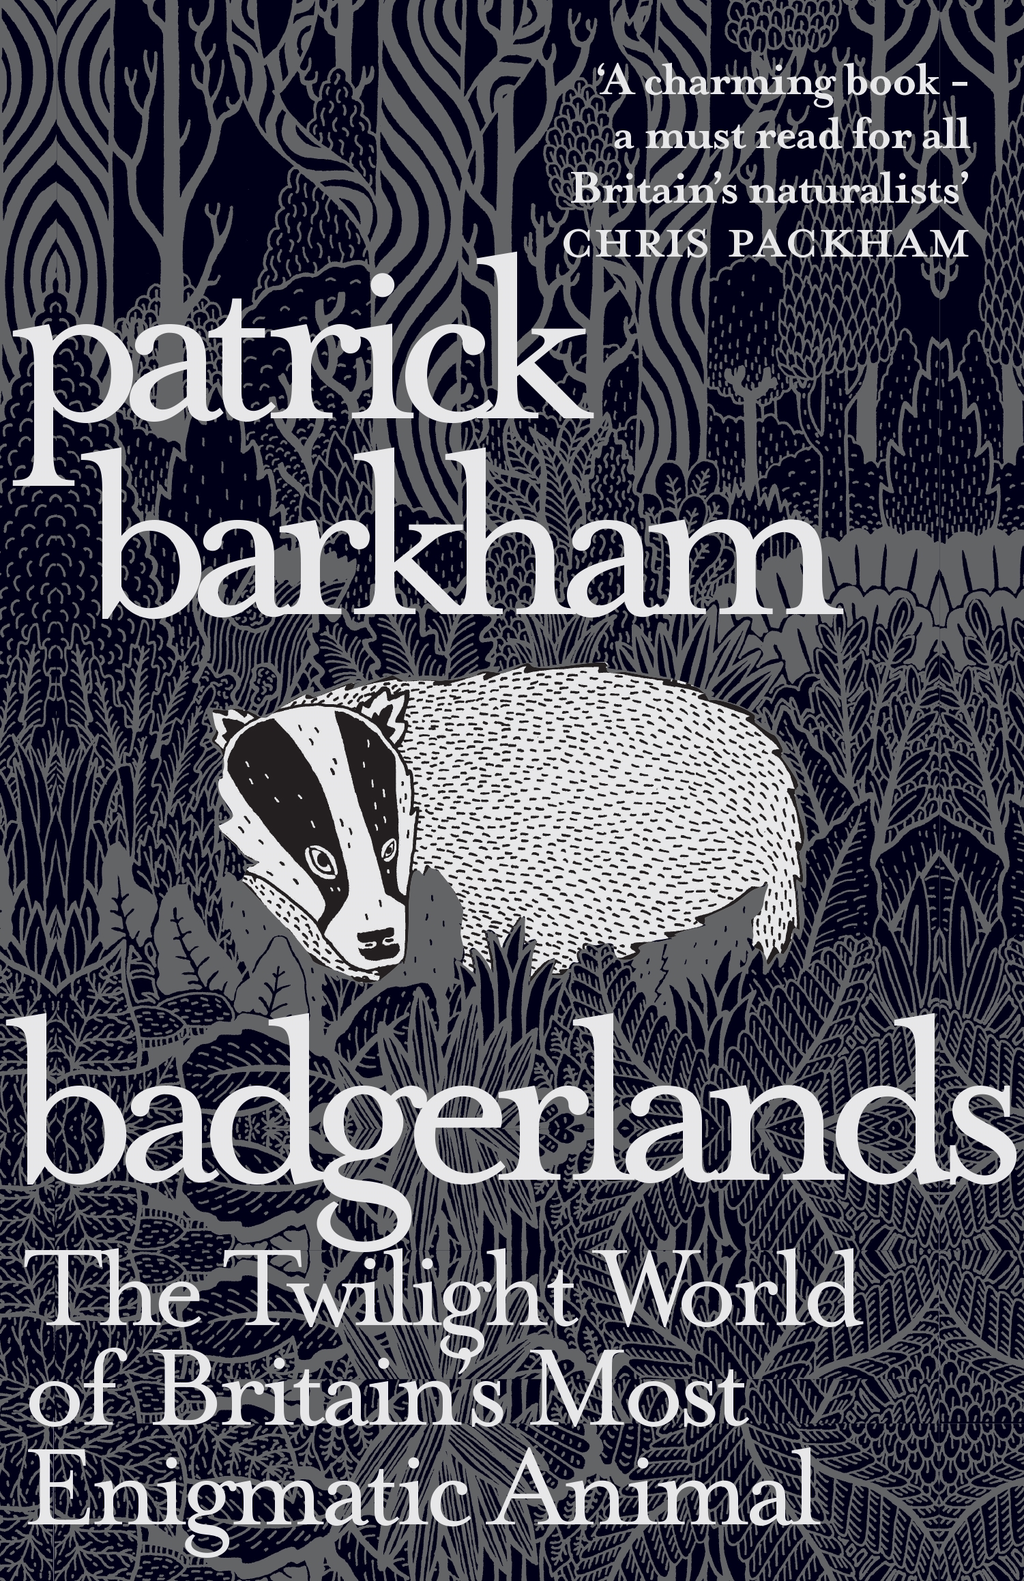 Badgerlands The Twilight World of Britain?s Most Enigmatic Animal